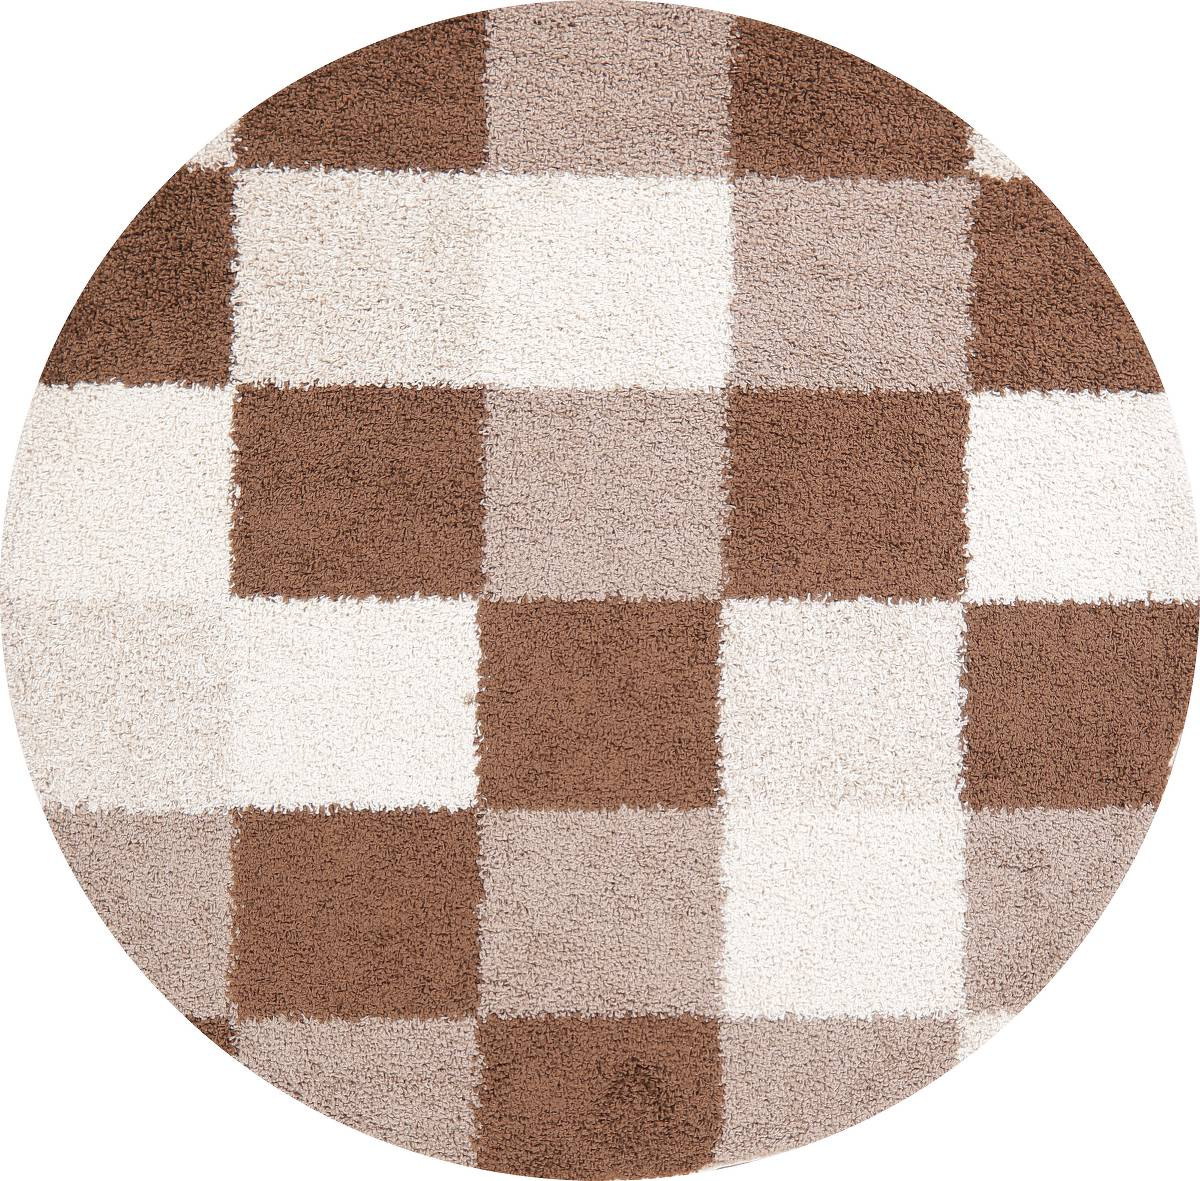 Checked Shaggy Turkish Oriental Rugs image 1